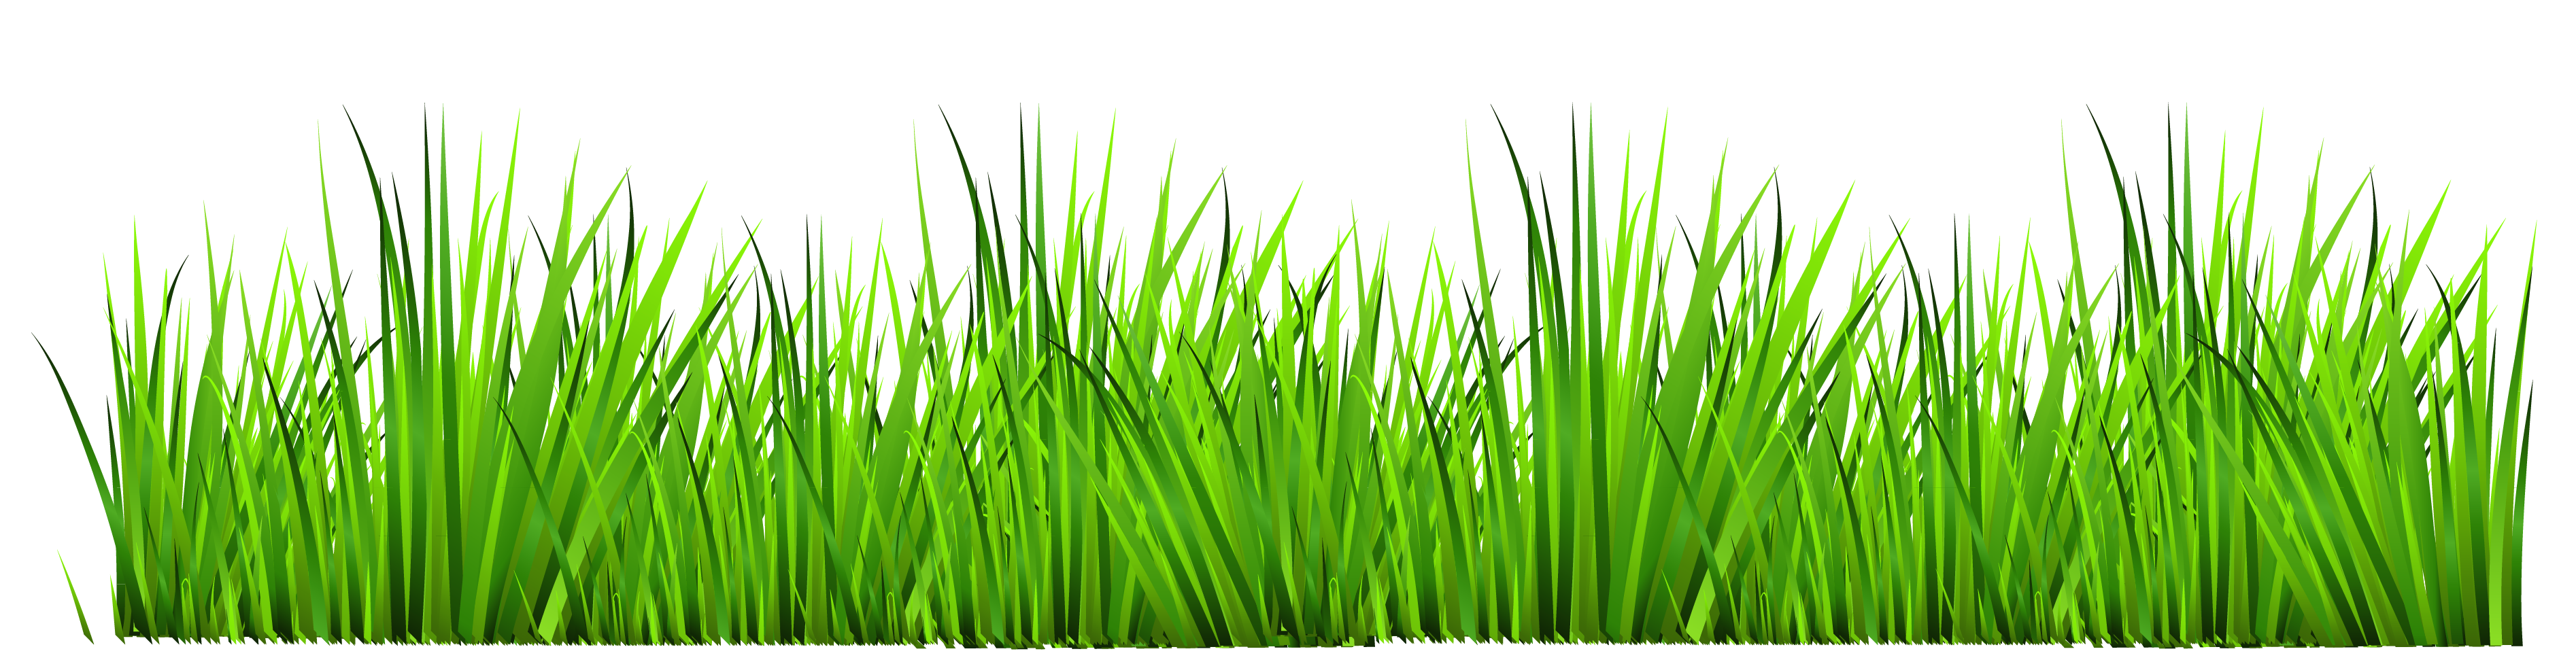 Best Grass Clipart #10832 - Clipartion.com